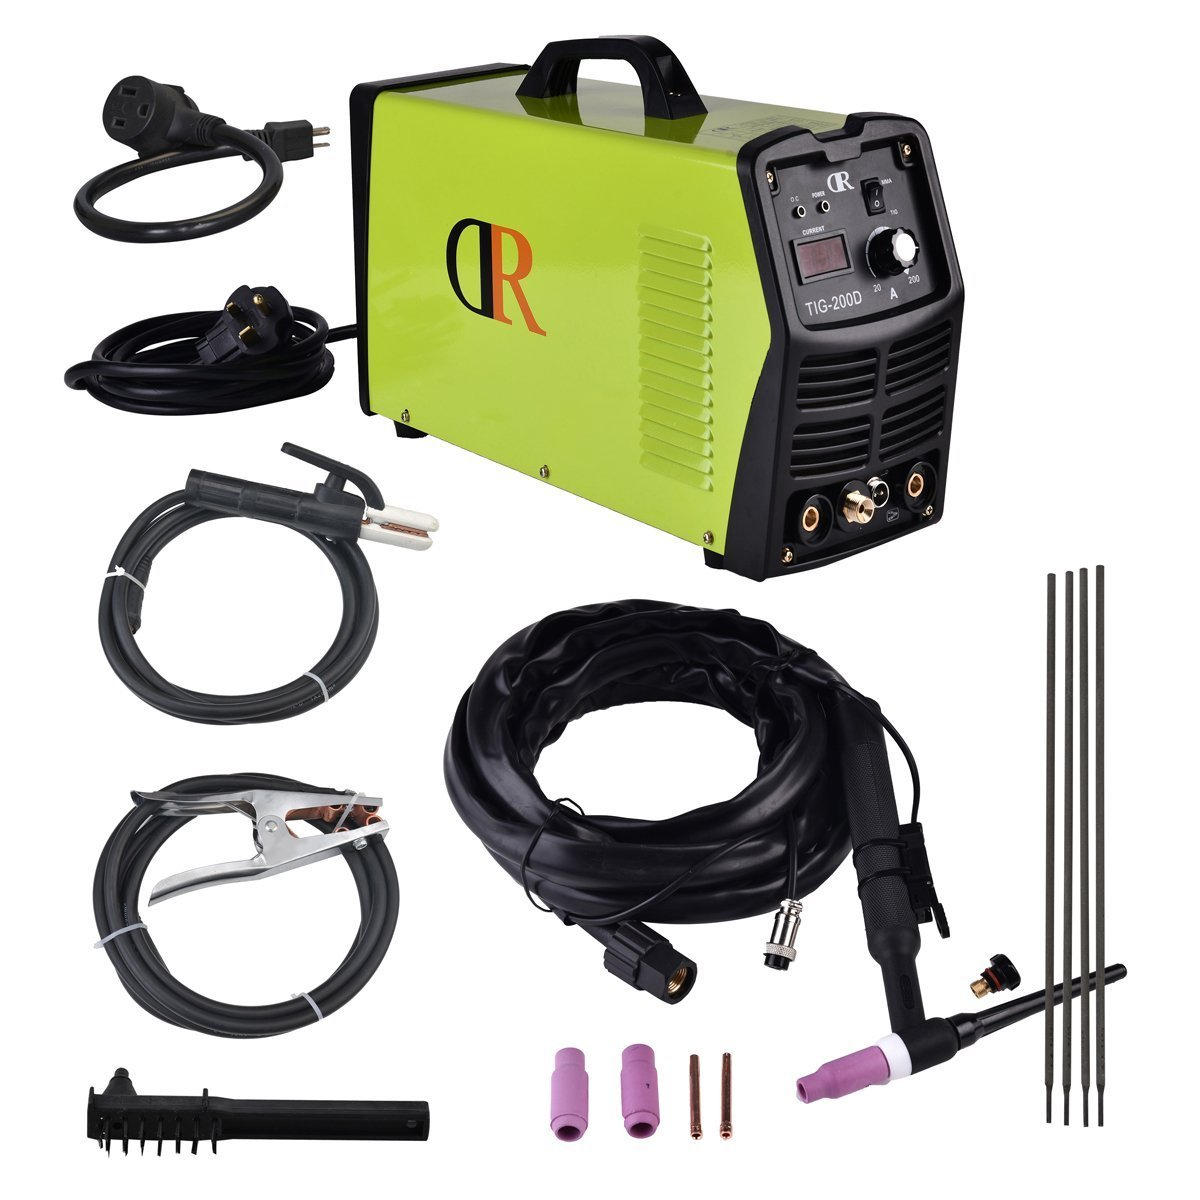 200 Amp TIG/Arc/Stick DC Welder 115/230V Weld Stainless steel Alloy steel Mild steel Copper Cast Iron Chrome by Dr Dry